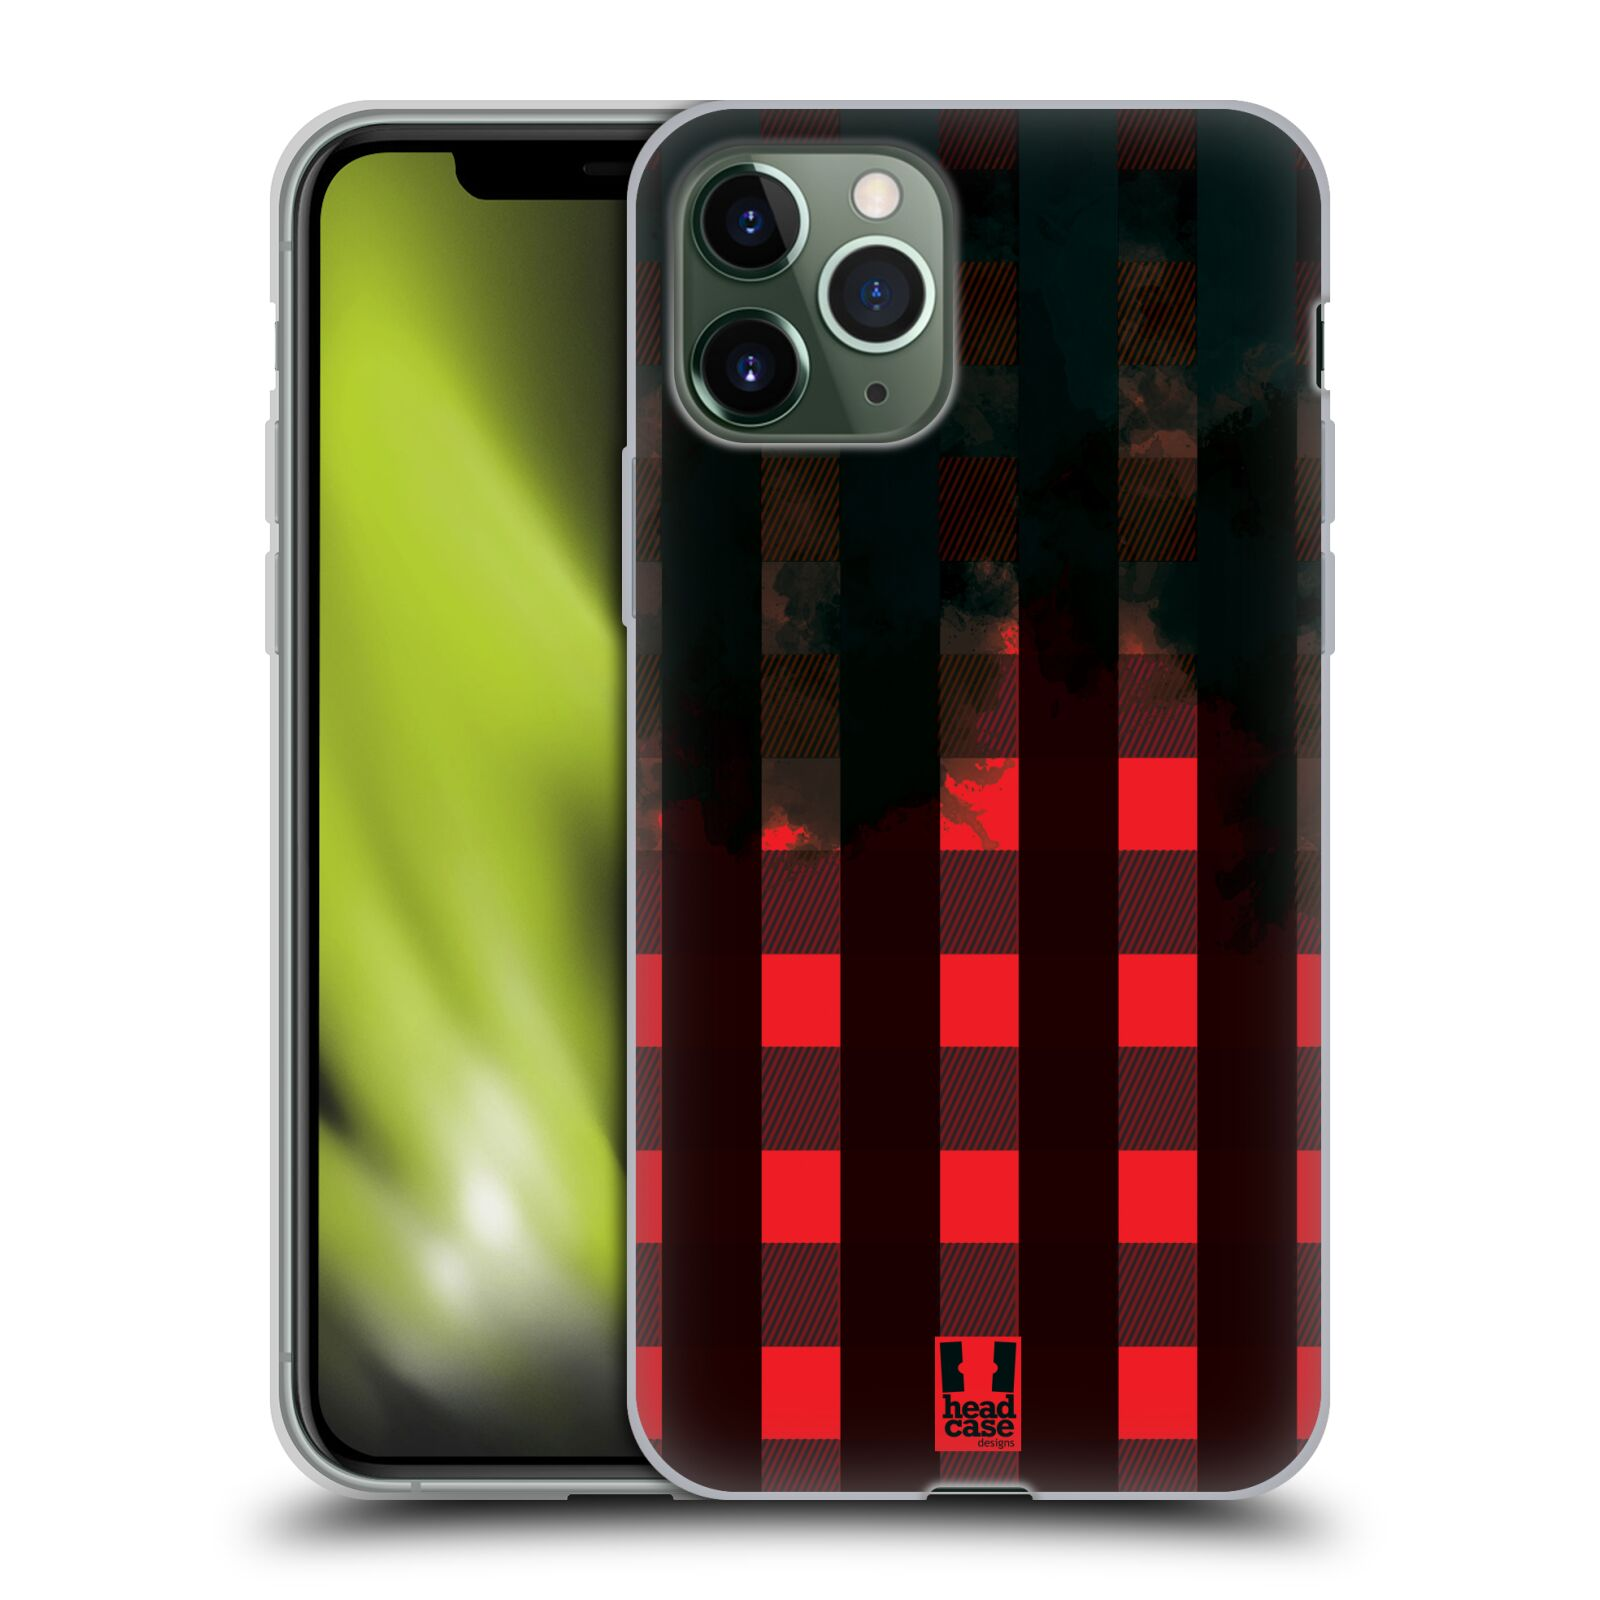 skla obaly iphone xr | Silikonové pouzdro na mobil Apple iPhone 11 Pro - Head Case - FLANEL RED BLACK